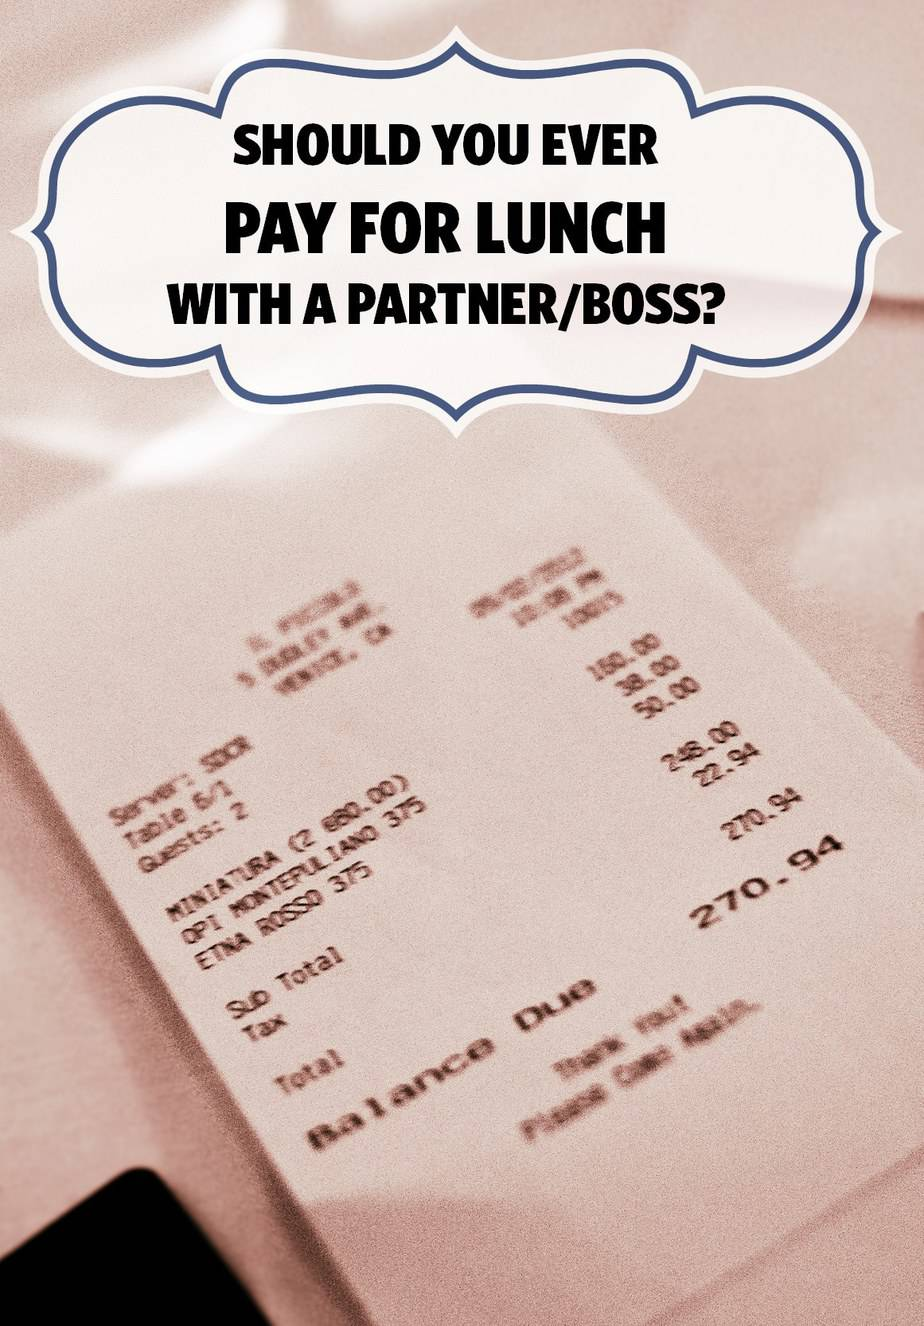 lunch partners who picks up the tab com should you ever pay for lunch a partner or boss corporette